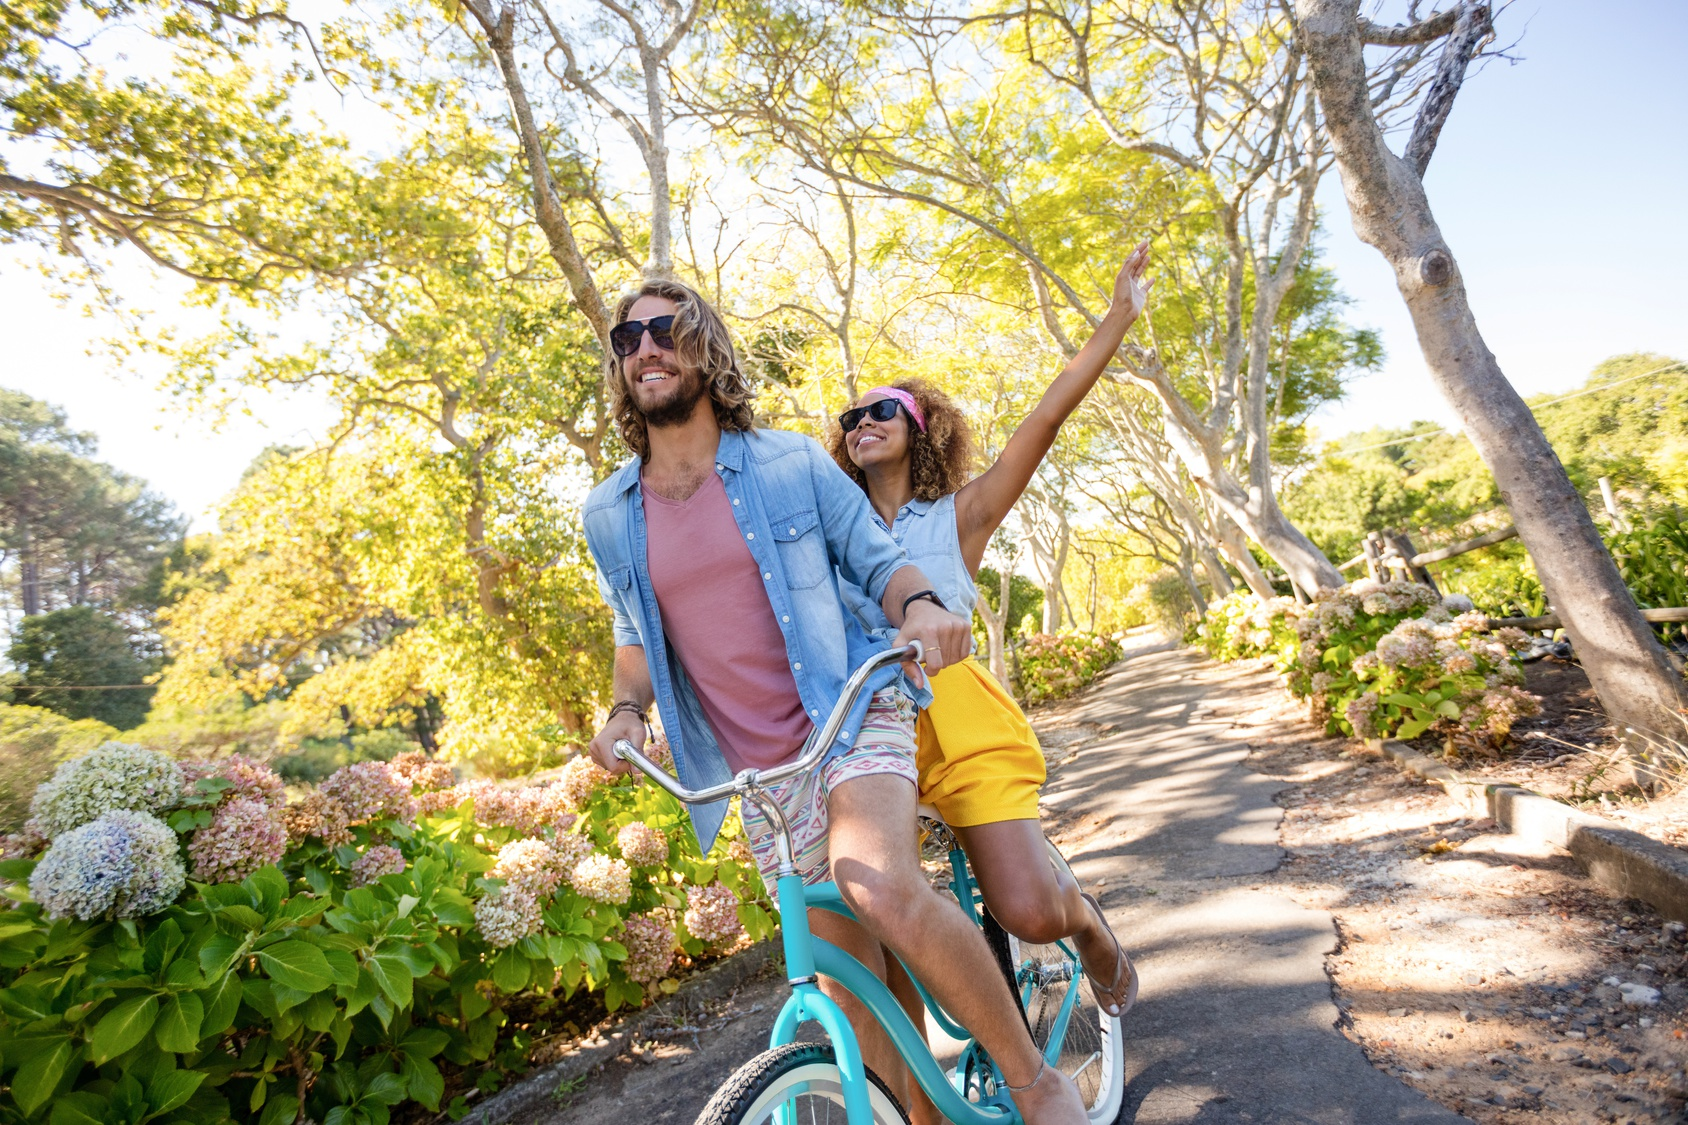 Couple having fun while cycling in the park